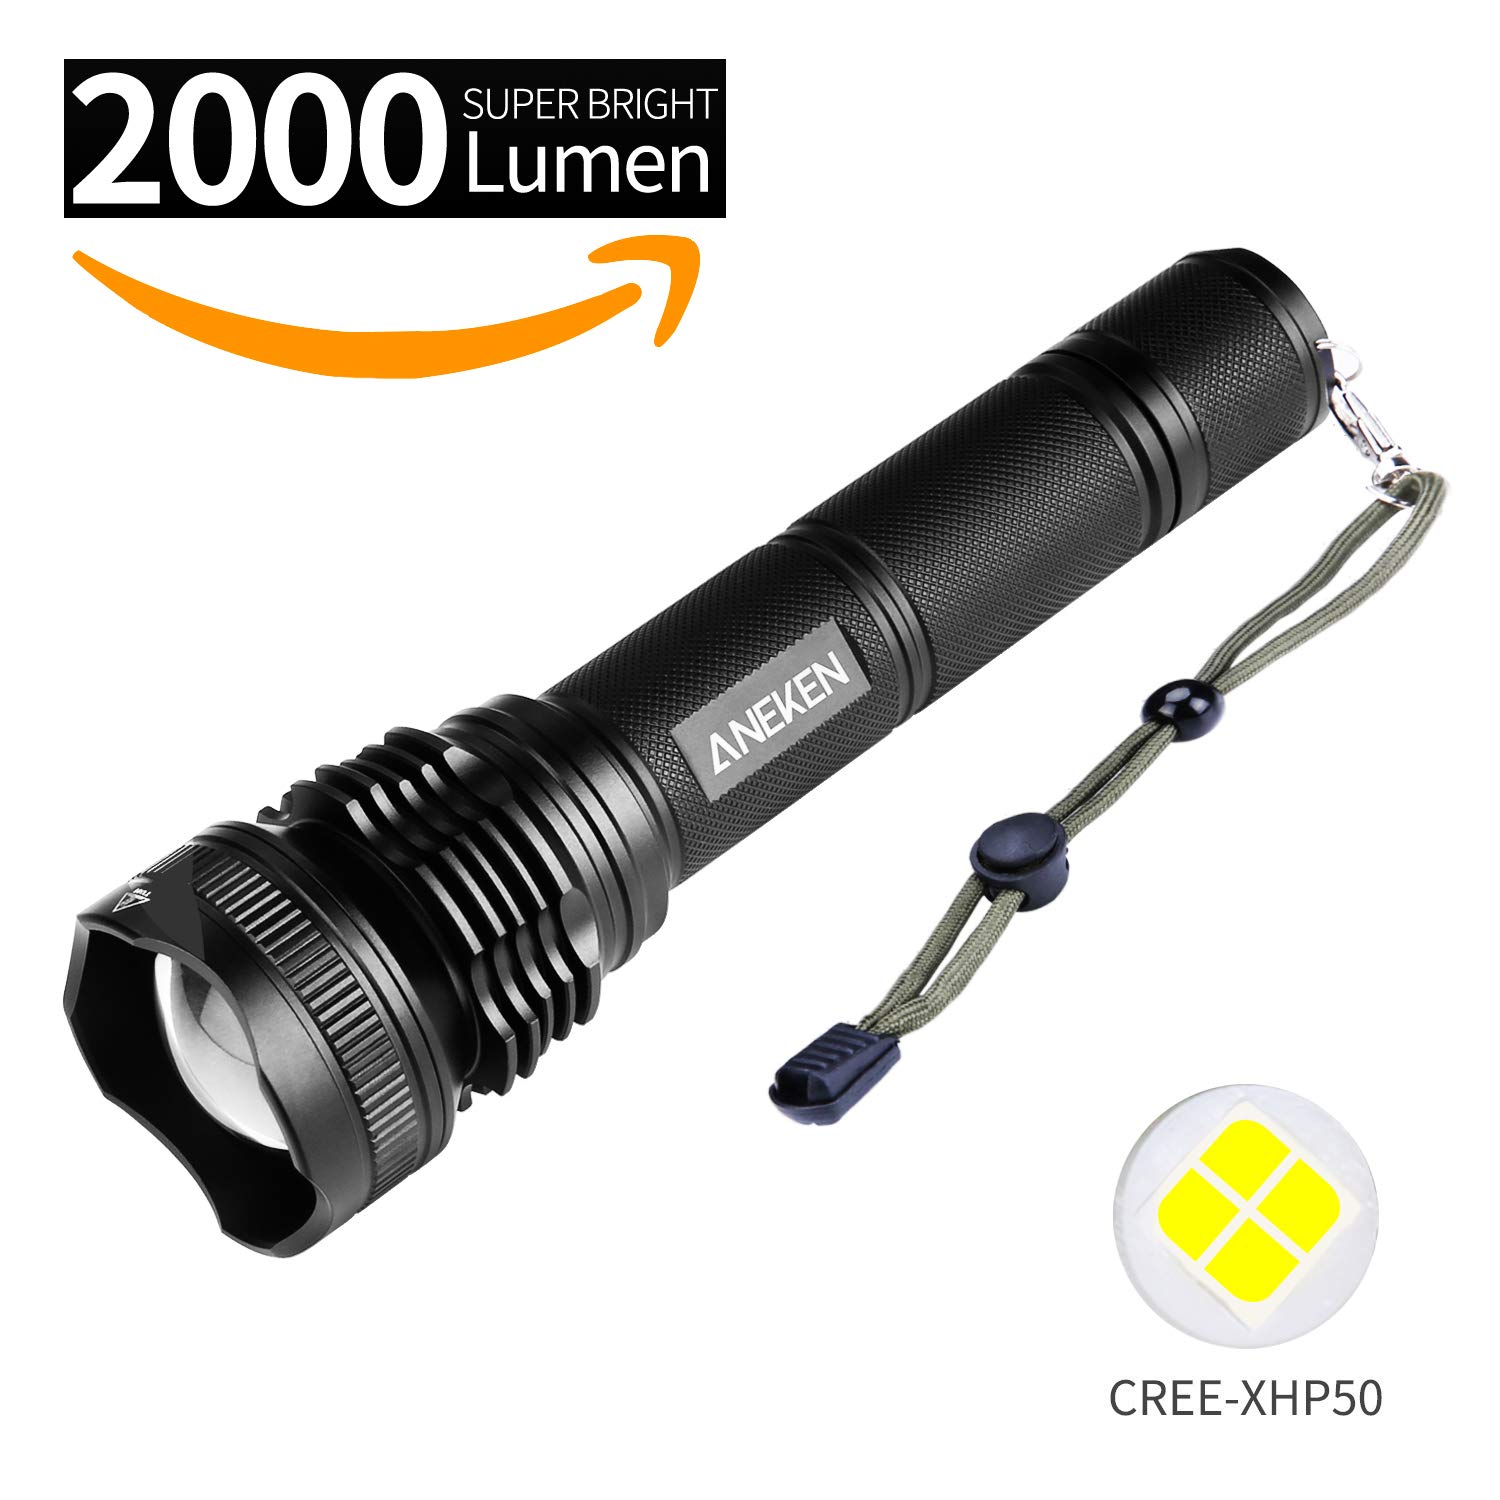 LED Portable Ultra Bright Handheld Flashlight, ANEKEN 2000LM Outdoor Water Resistant Torch IPX4 Zoomable 1000 Meters Torchlight, 5 Light Modes for Camping Hiking and Home Emergency (Battery Included)